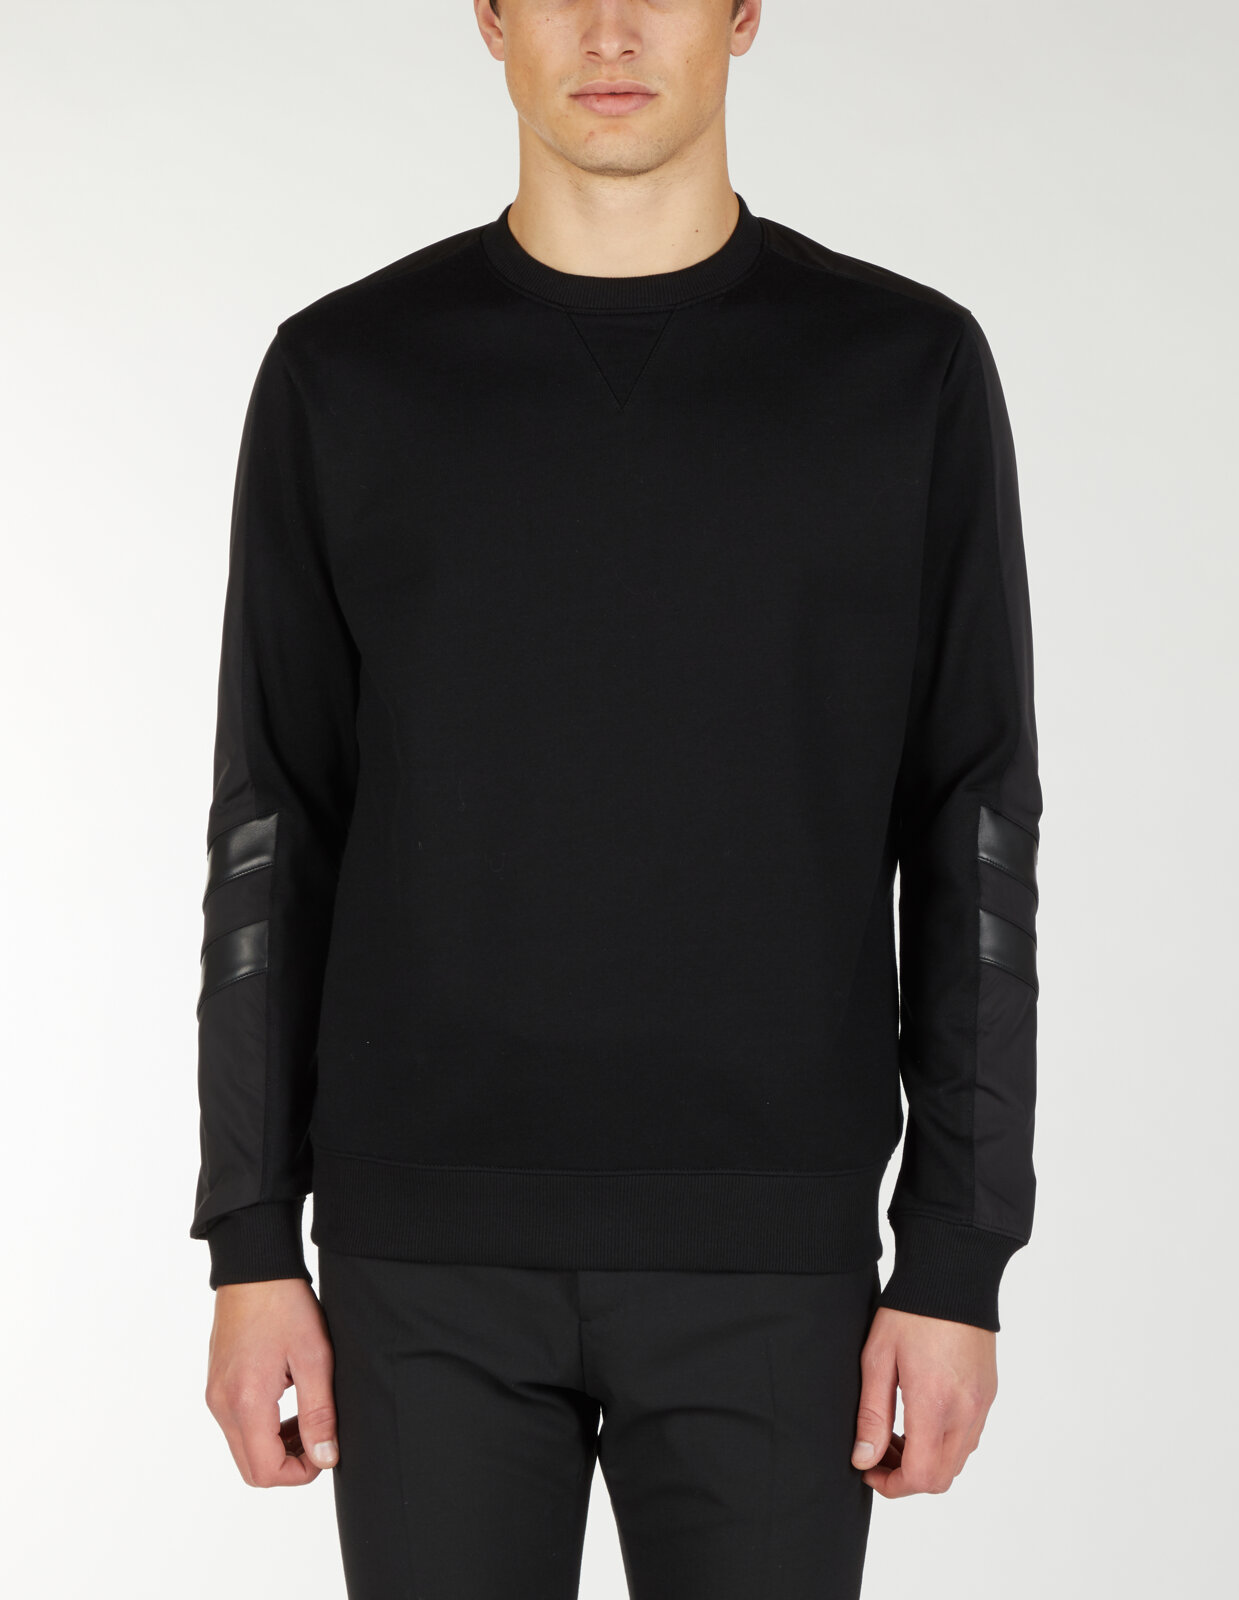 Sweatshirt With Sleeves Contrast Fabrics - Les Hommes